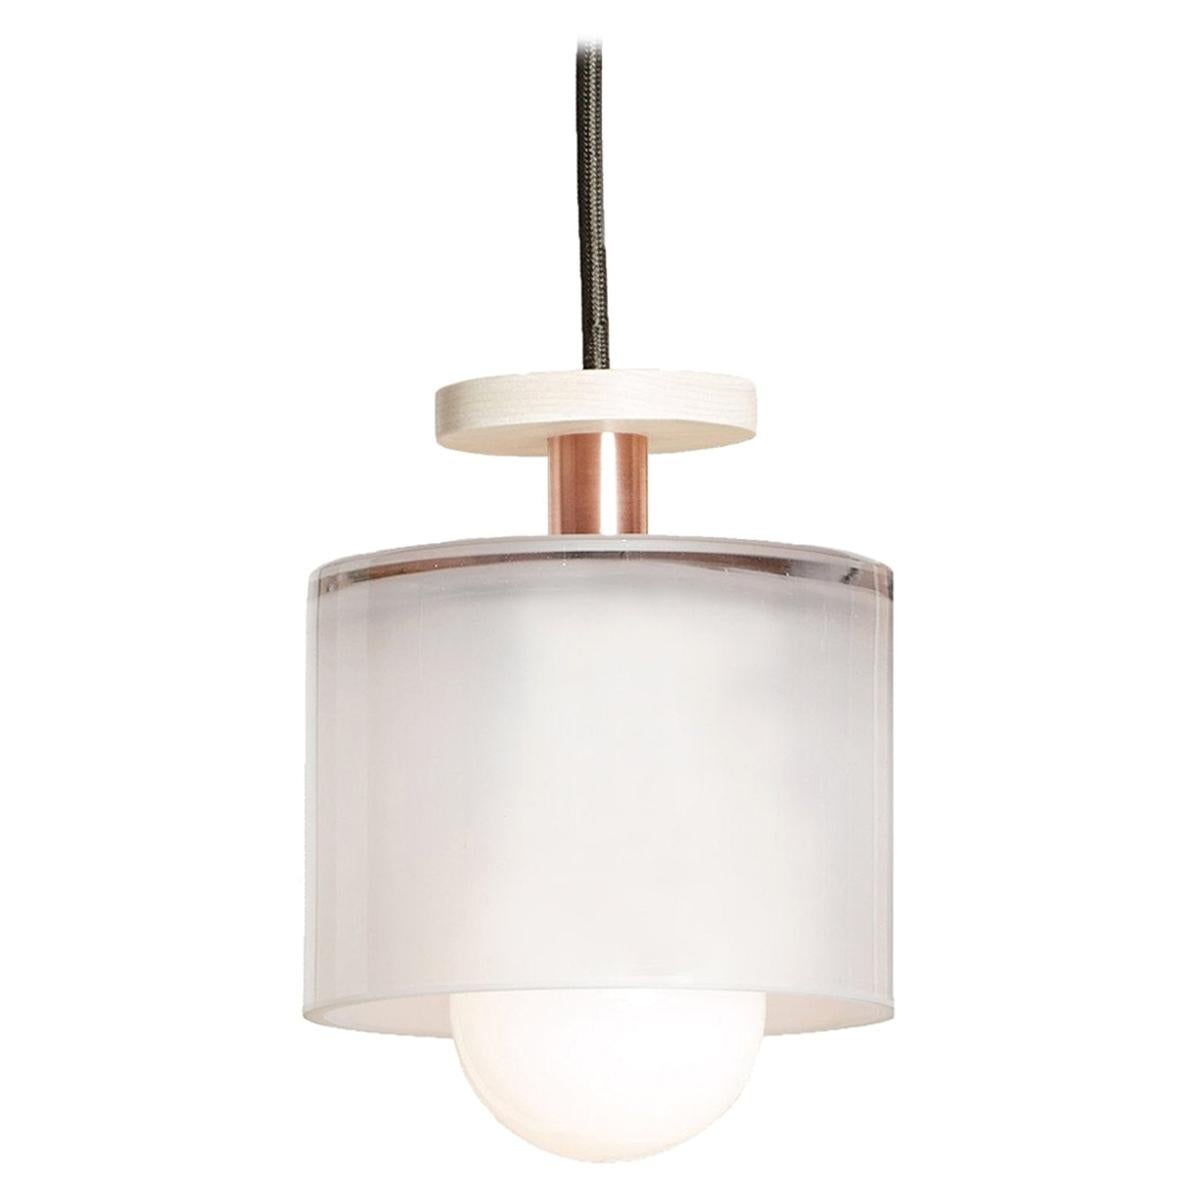 Frosted Glass Spun Pendant Light by Ladies & Gentlemen Studio